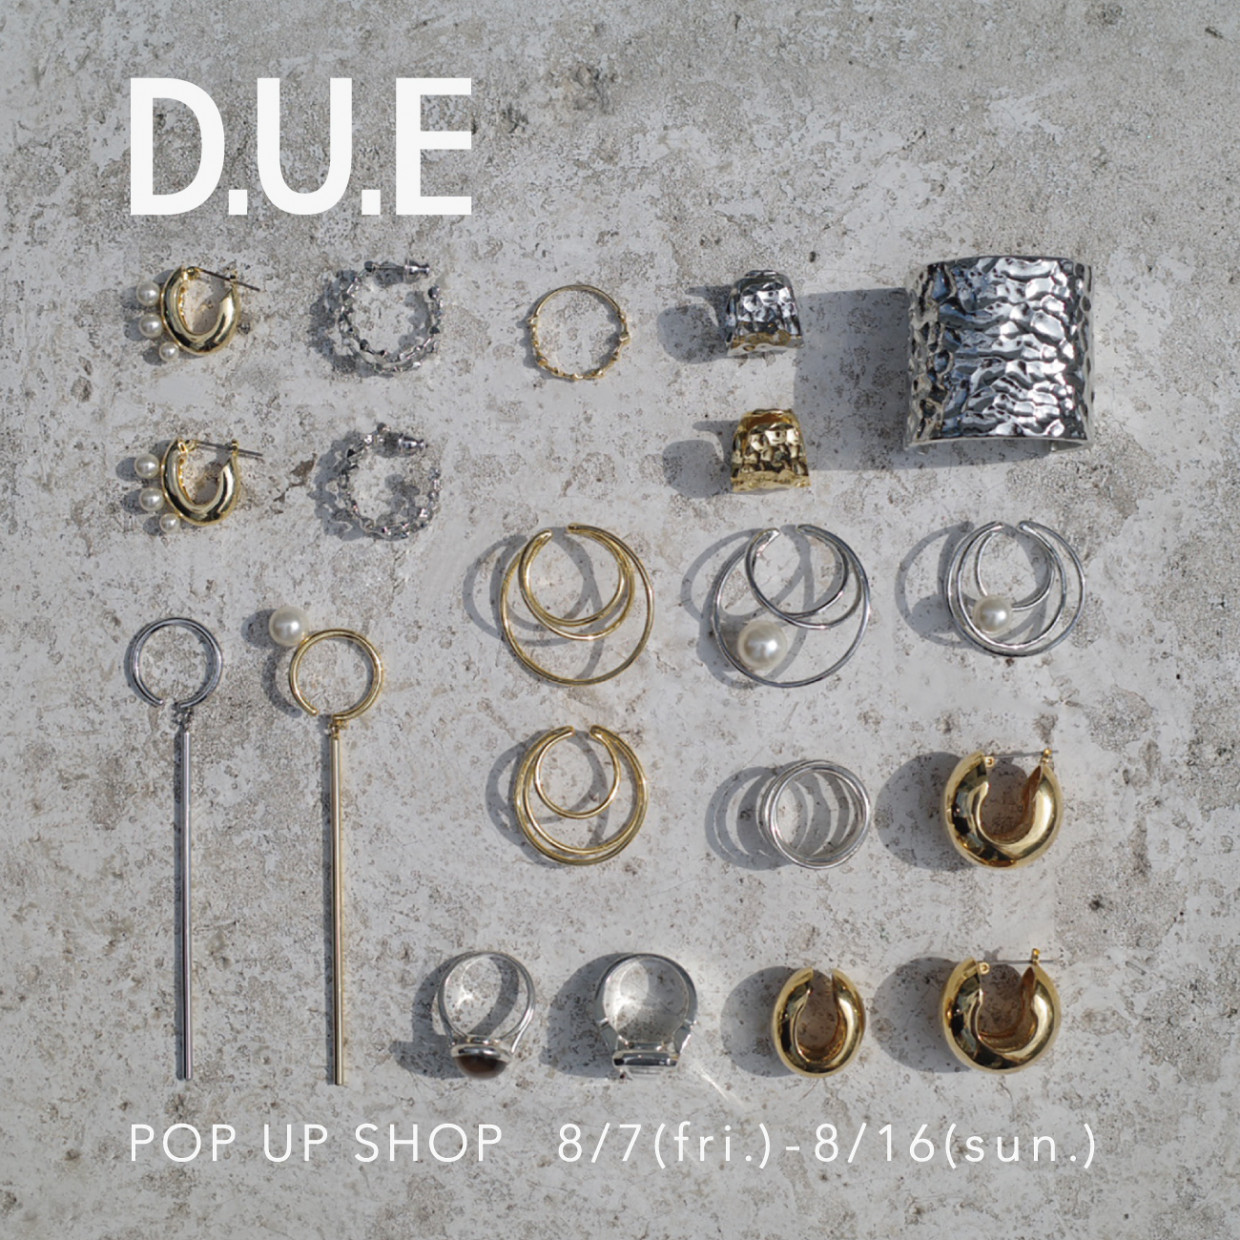 「D.U.E」POP UP SHOP